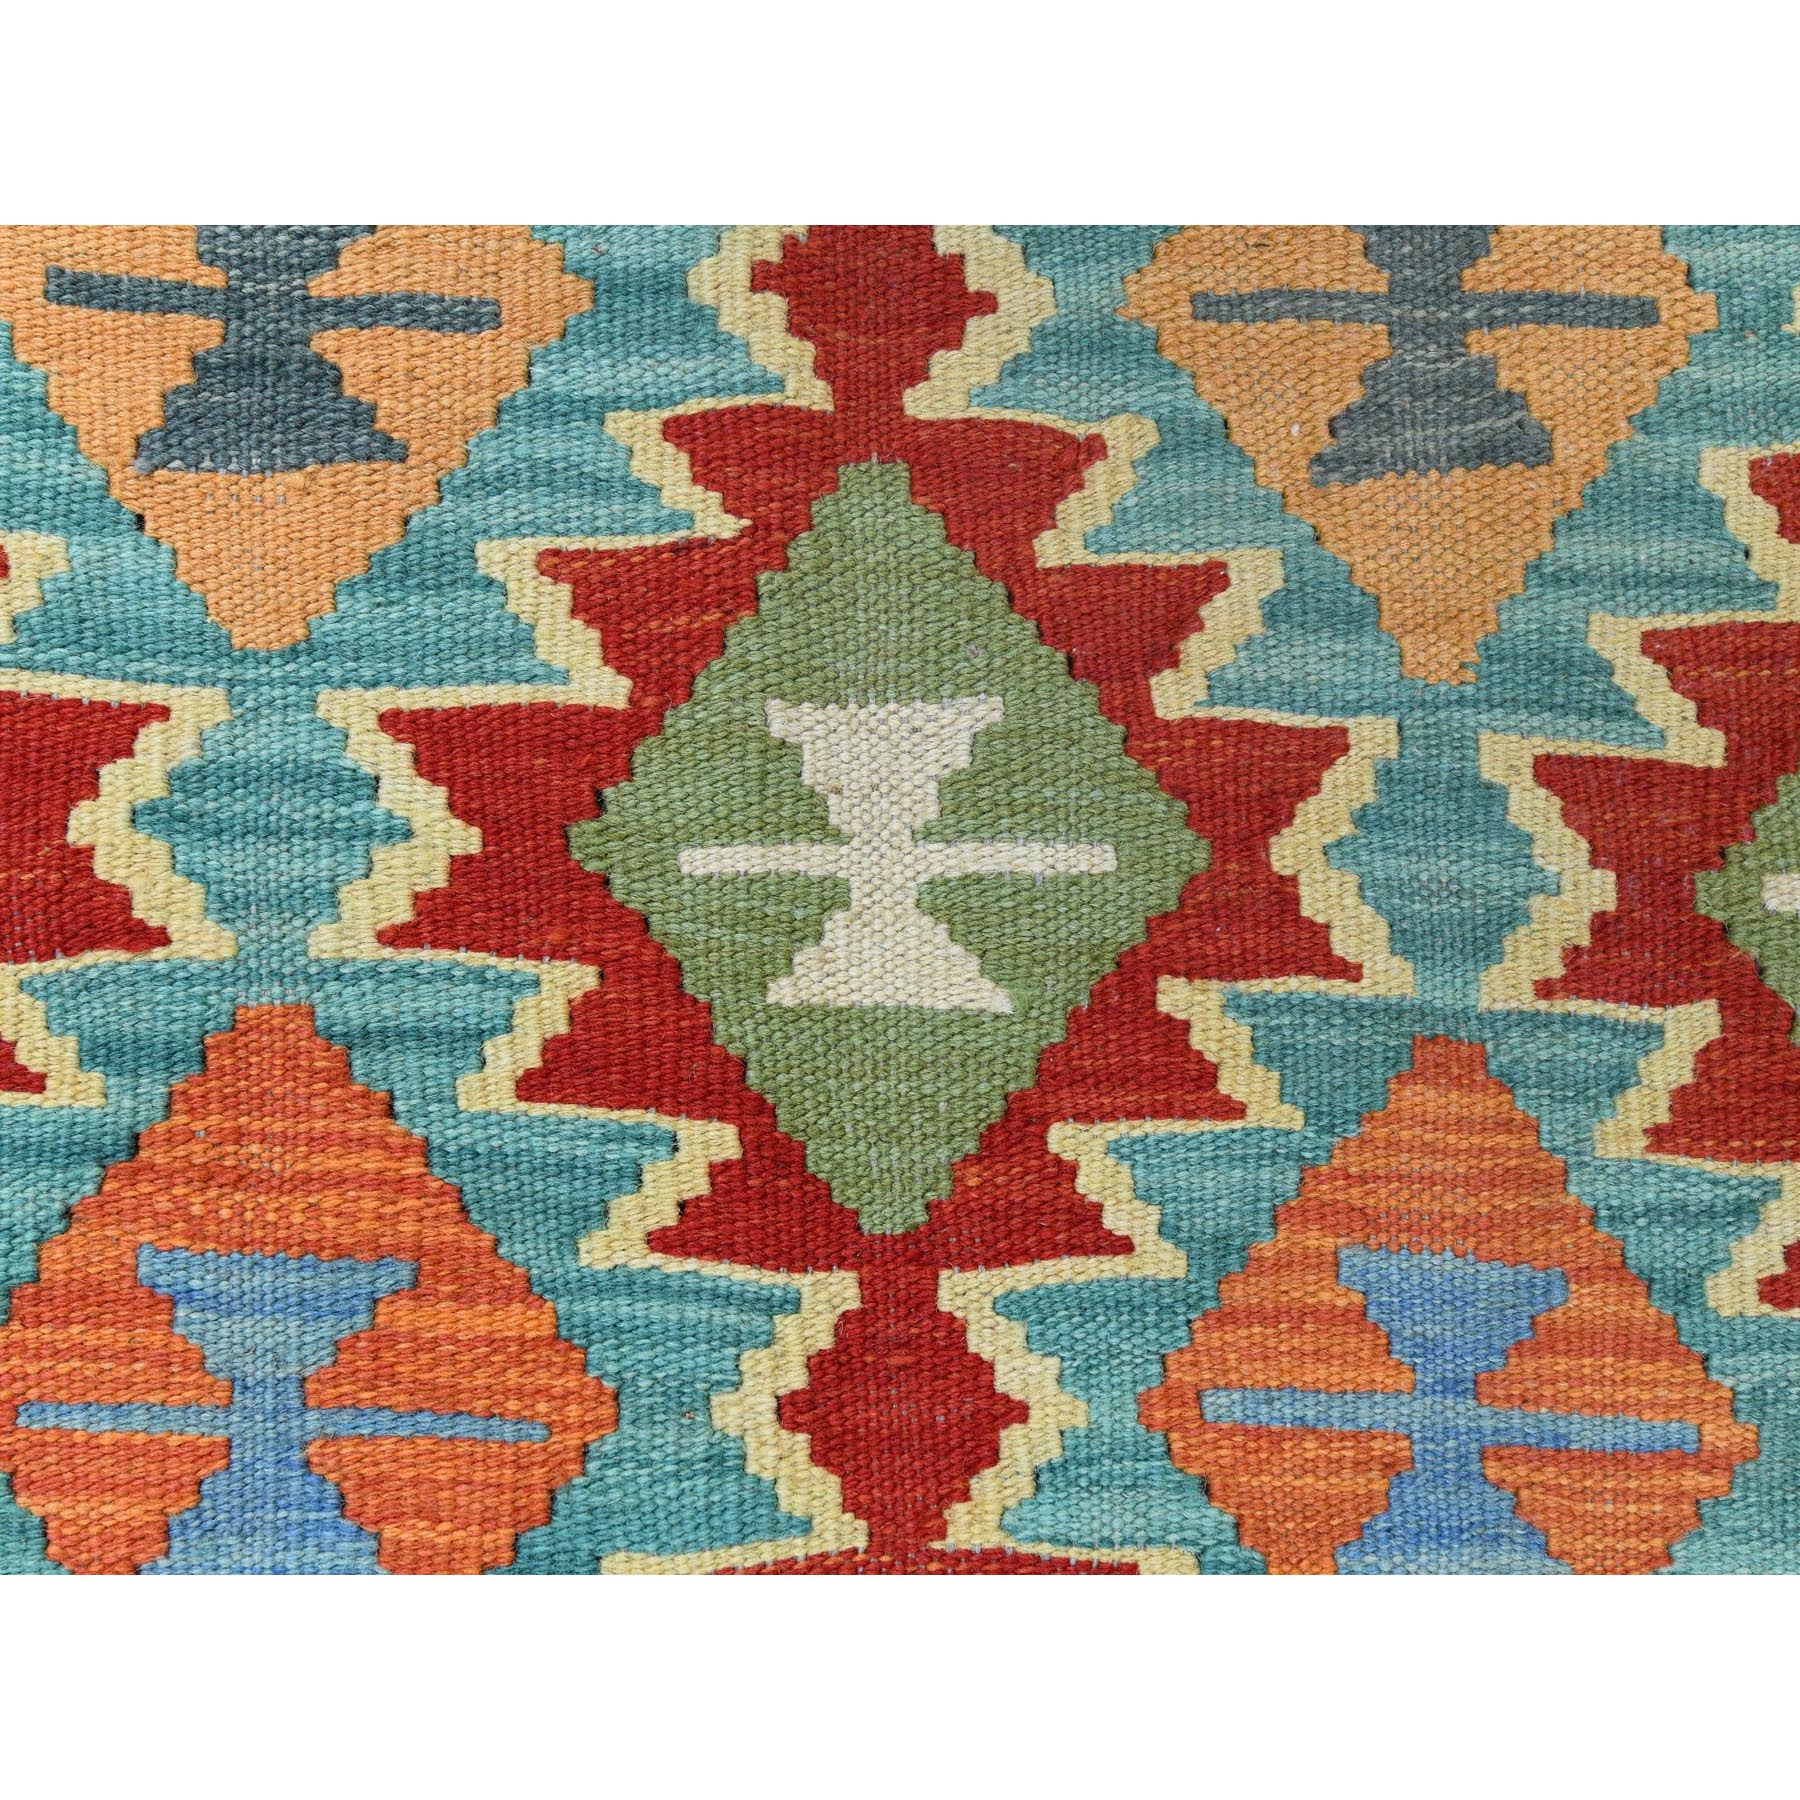 "2'10""x4'2"" Colorful Geometric Design Afghan Kilim Reversible Luxurious Wool Hand Woven Oriental Rug"